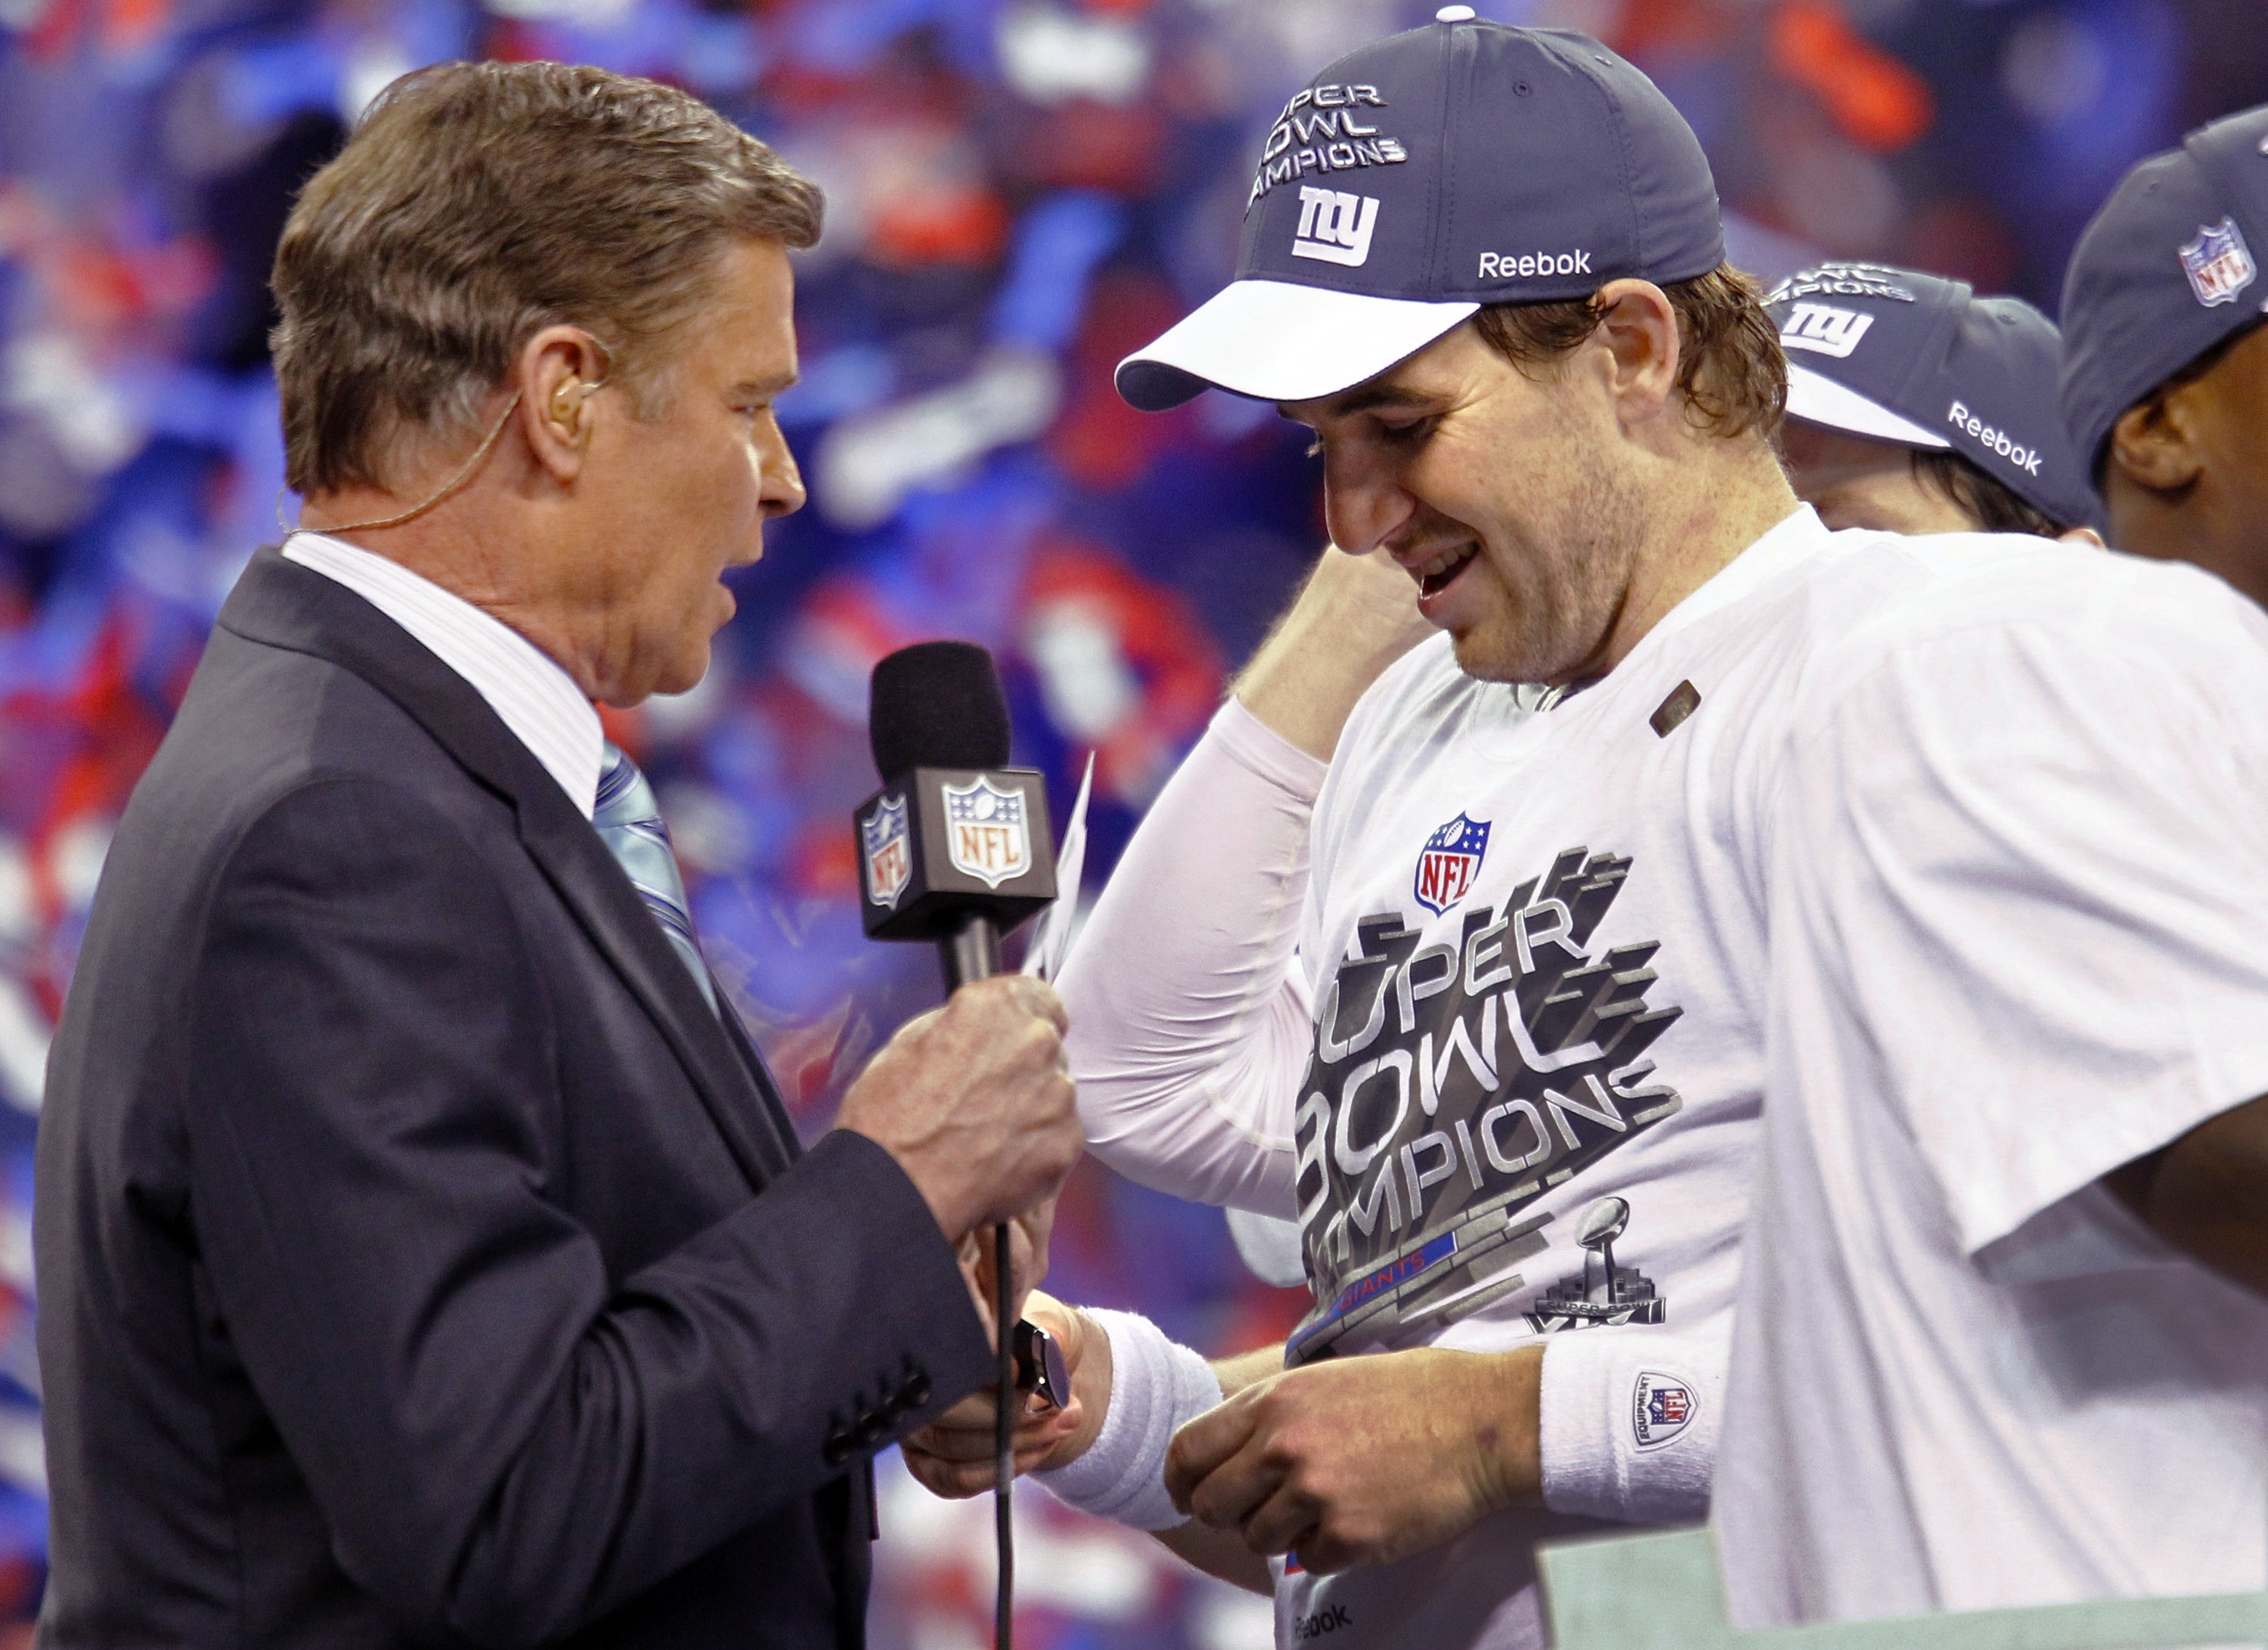 Super Bowl Xlvi Mvp Takes Home Chevrolet Corvette throughout Nbc Super Bowl Mvp Vote